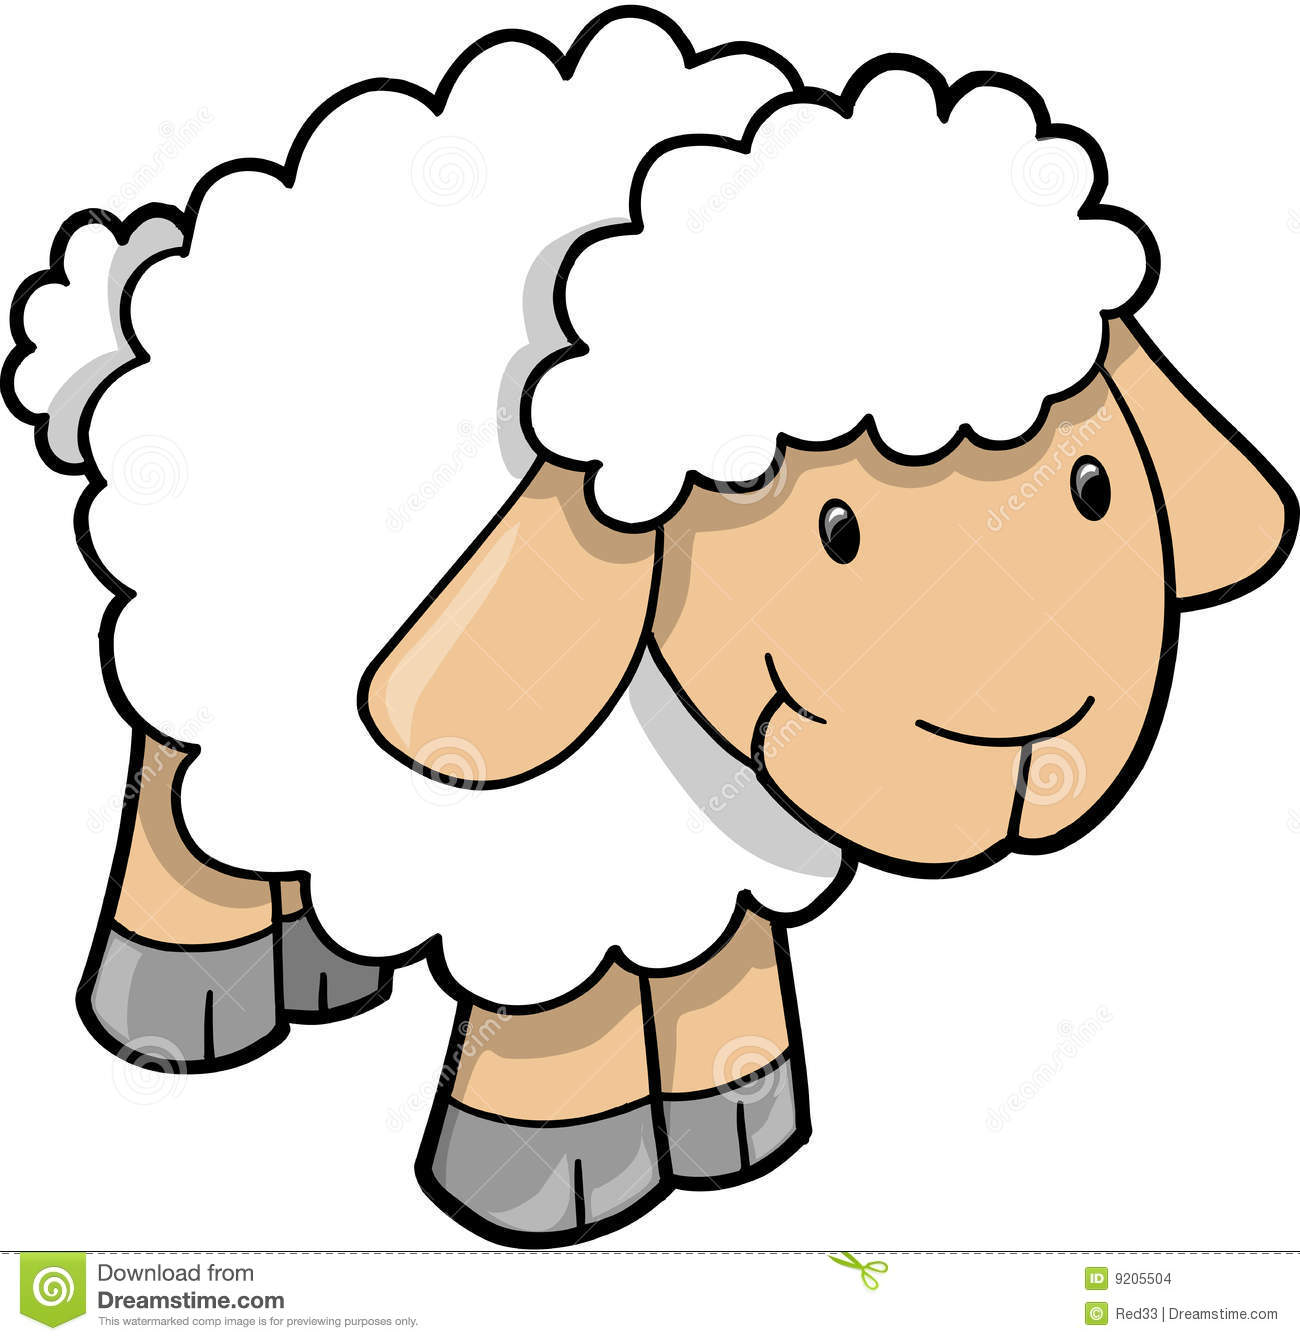 15 Free Vector Clip Art Sheep Images